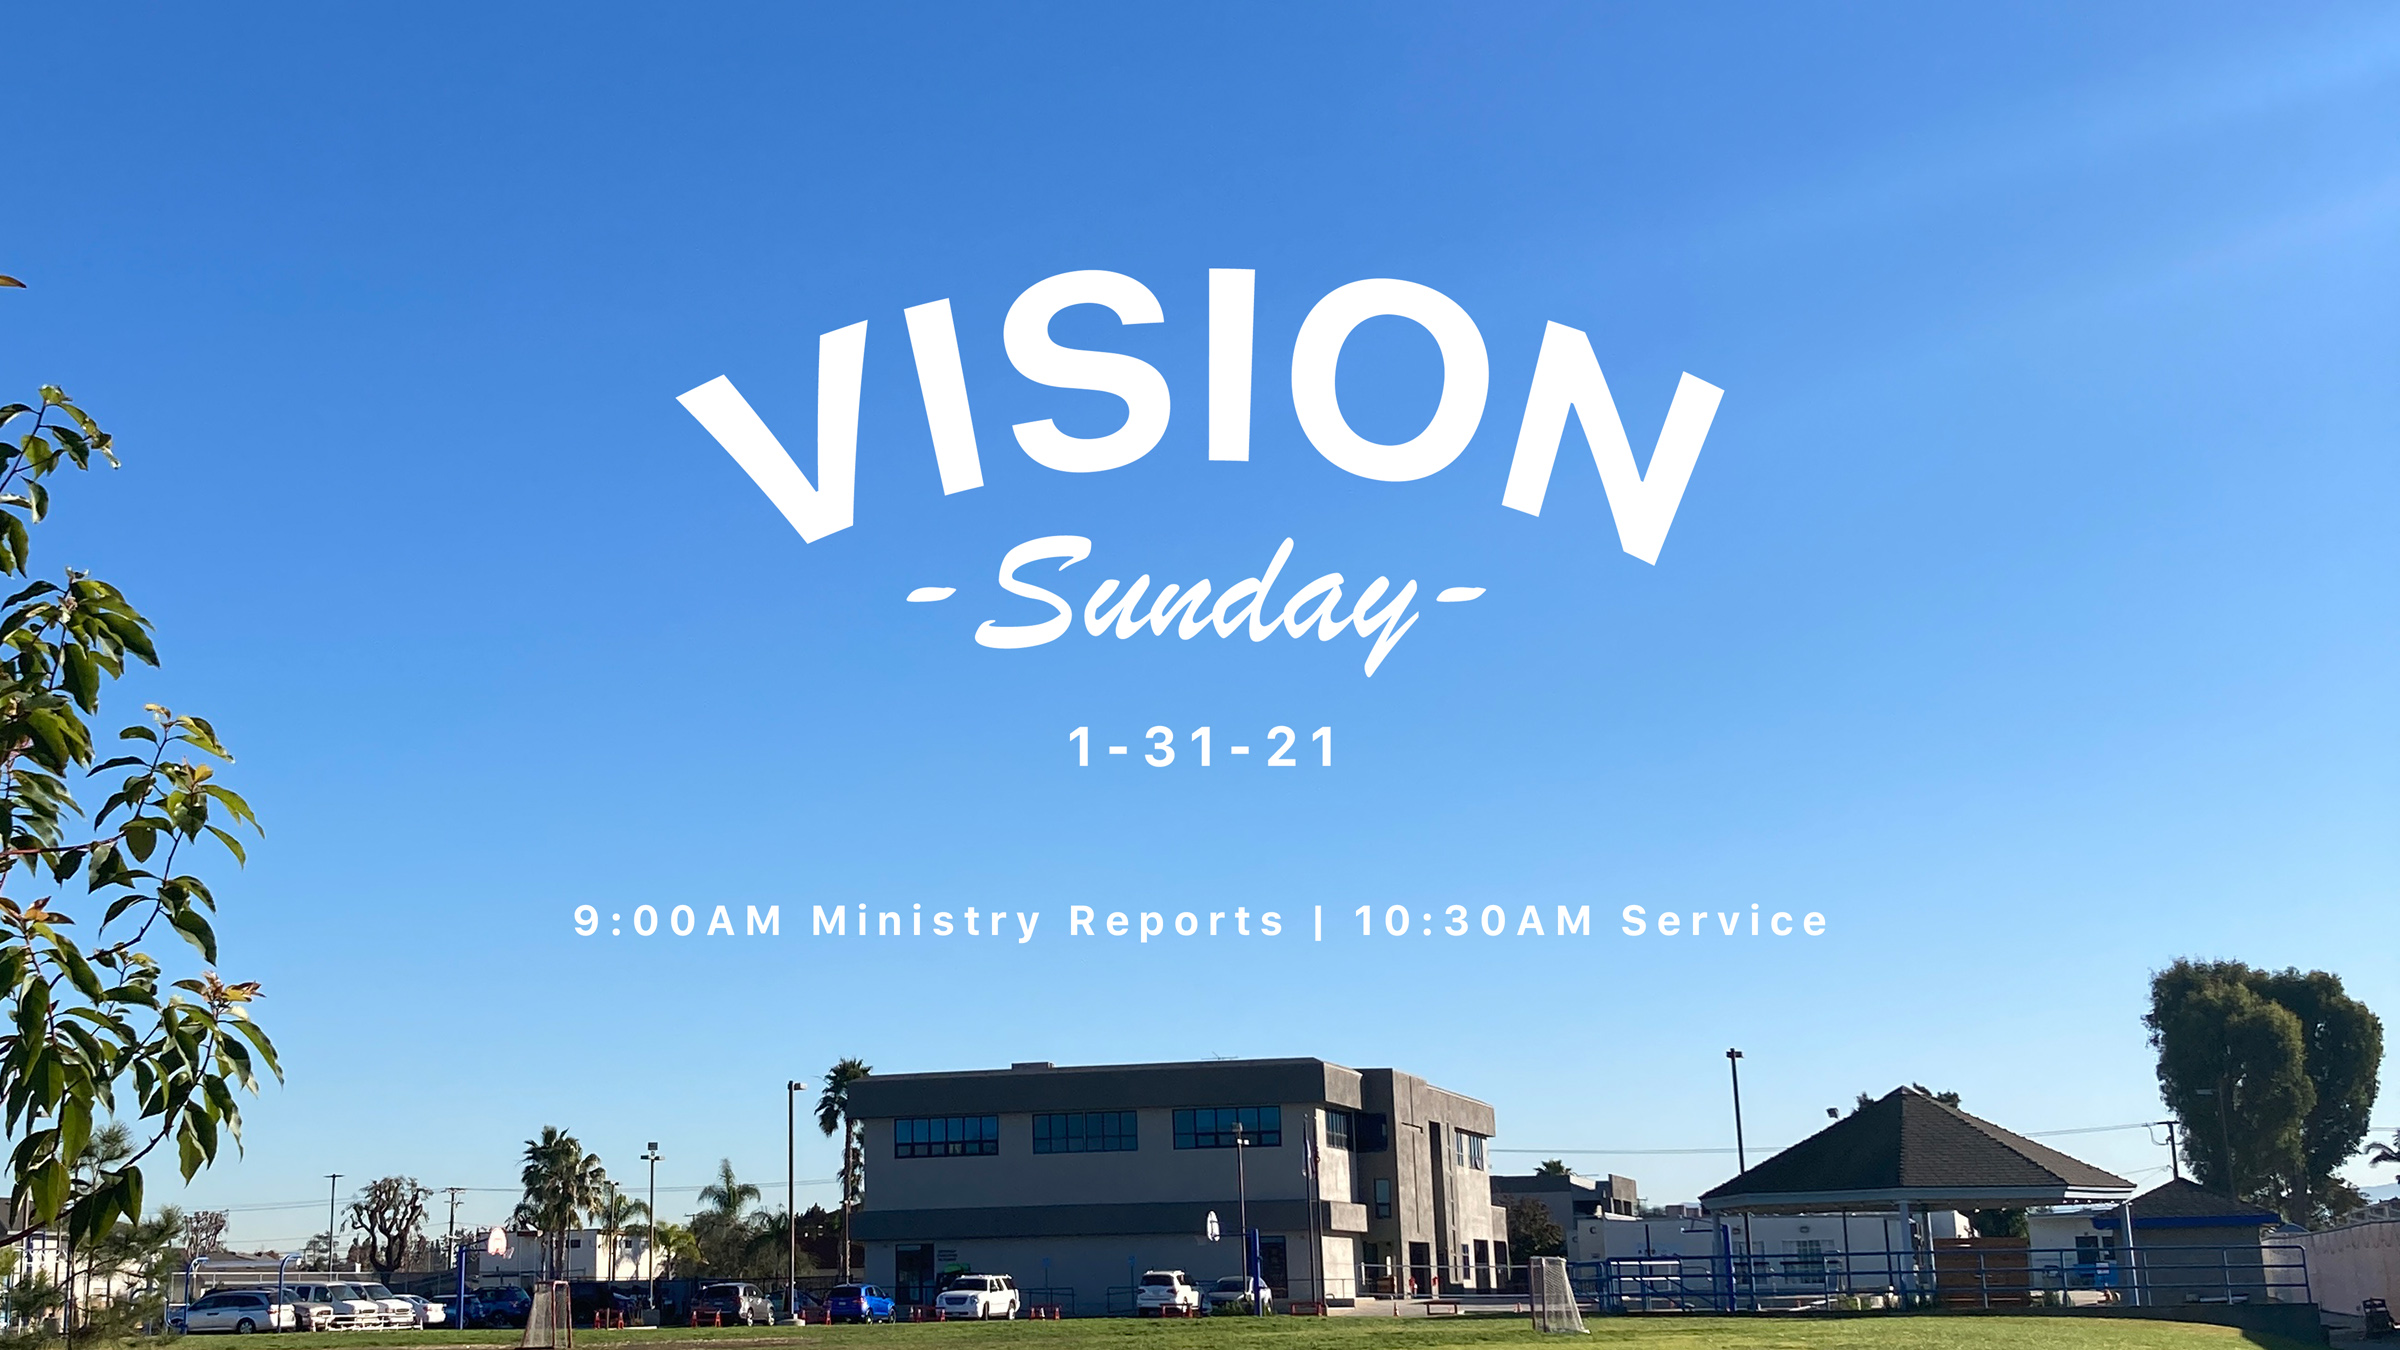 Vision Sunday Slide image